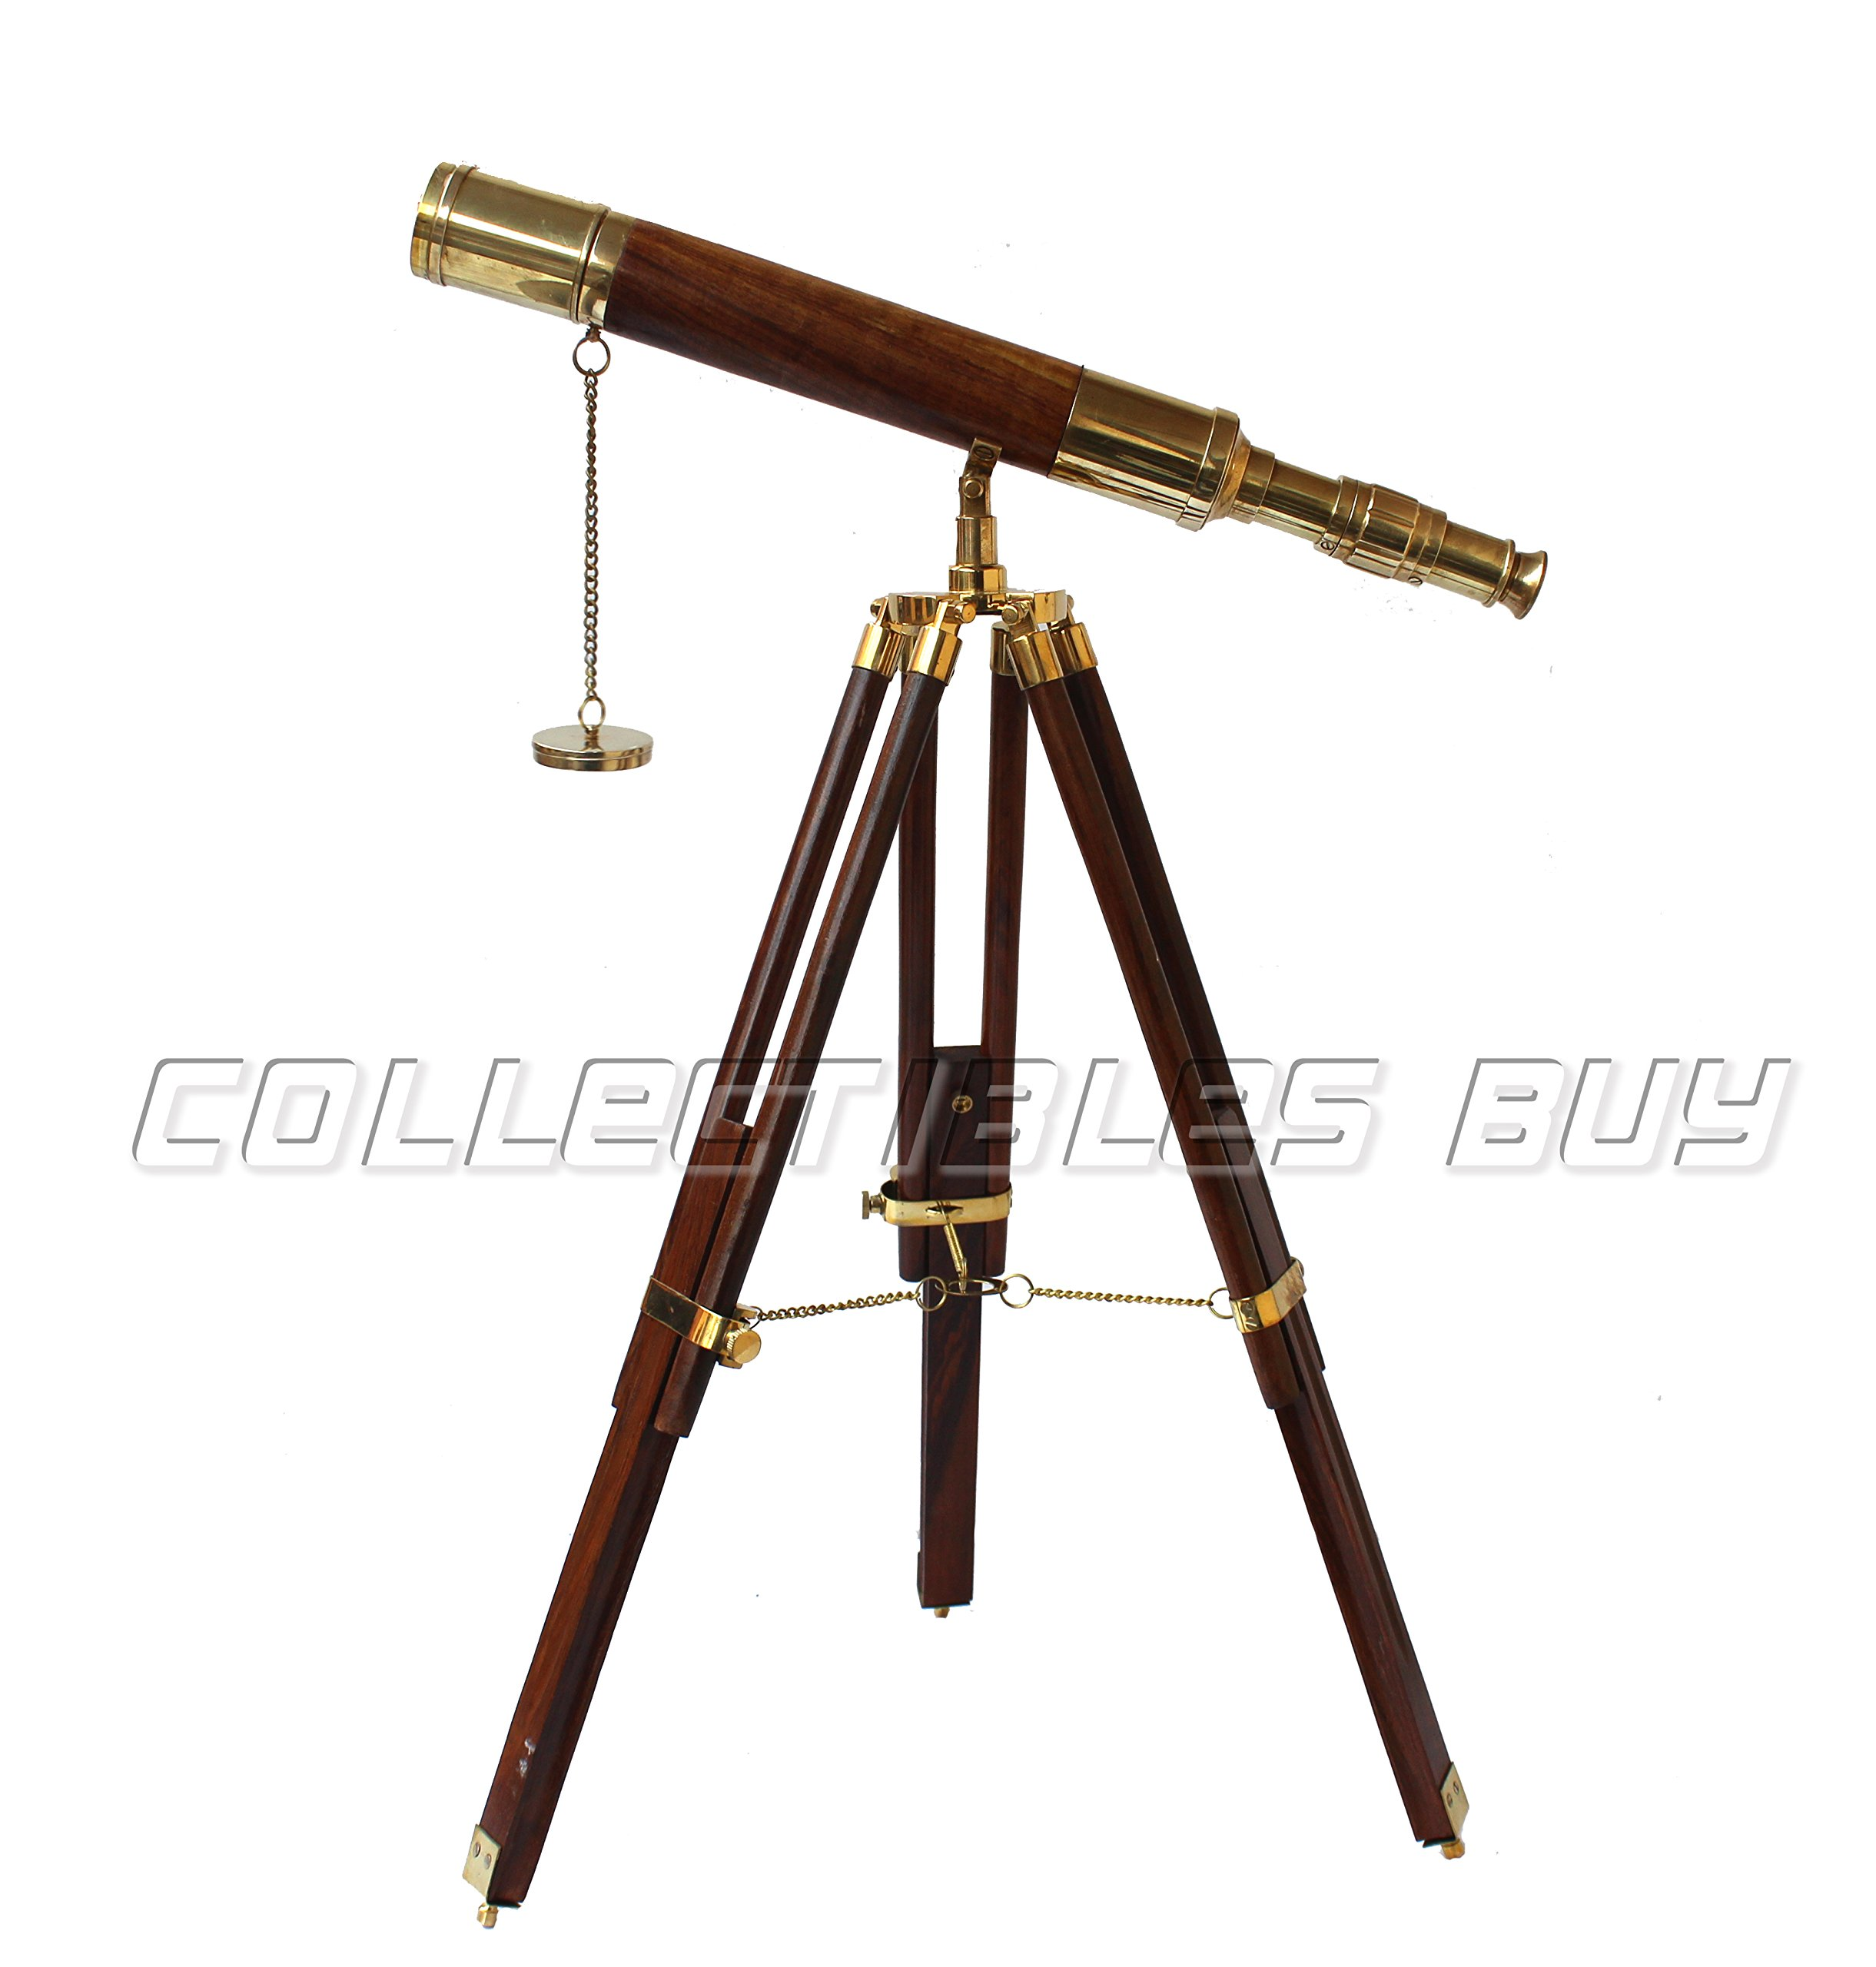 Collectibles Buy Vintage Table Decorative Shiny Brass Tube Telescope with Antique Wooden Tripod High Magnification Sailor Article